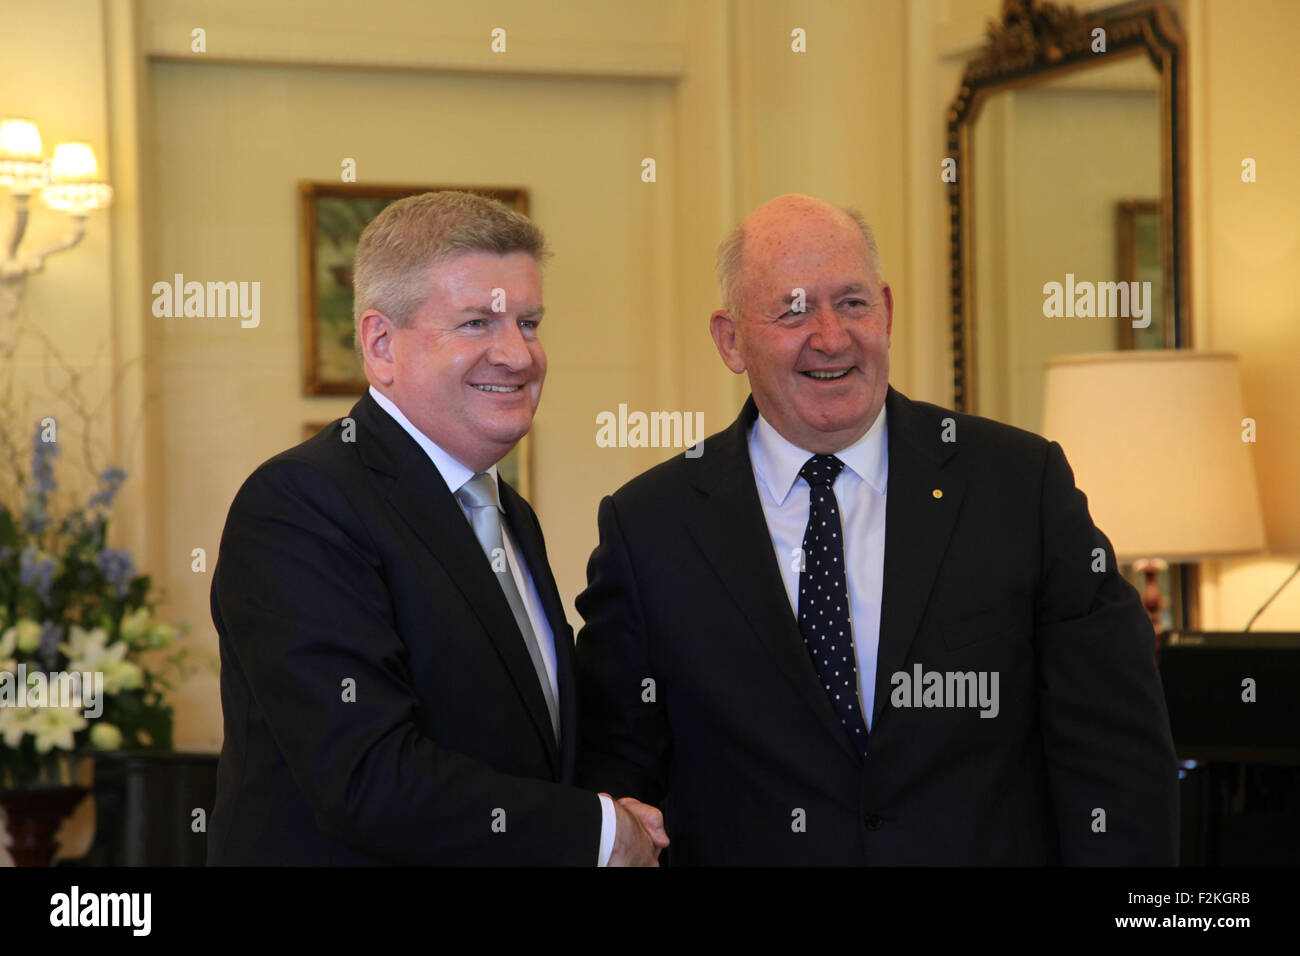 Canberra, Australia. 21st Sep, 2015. Mitch Fifield (L) is sworn in as Minister for Communications and Arts by Governor - Stock Image